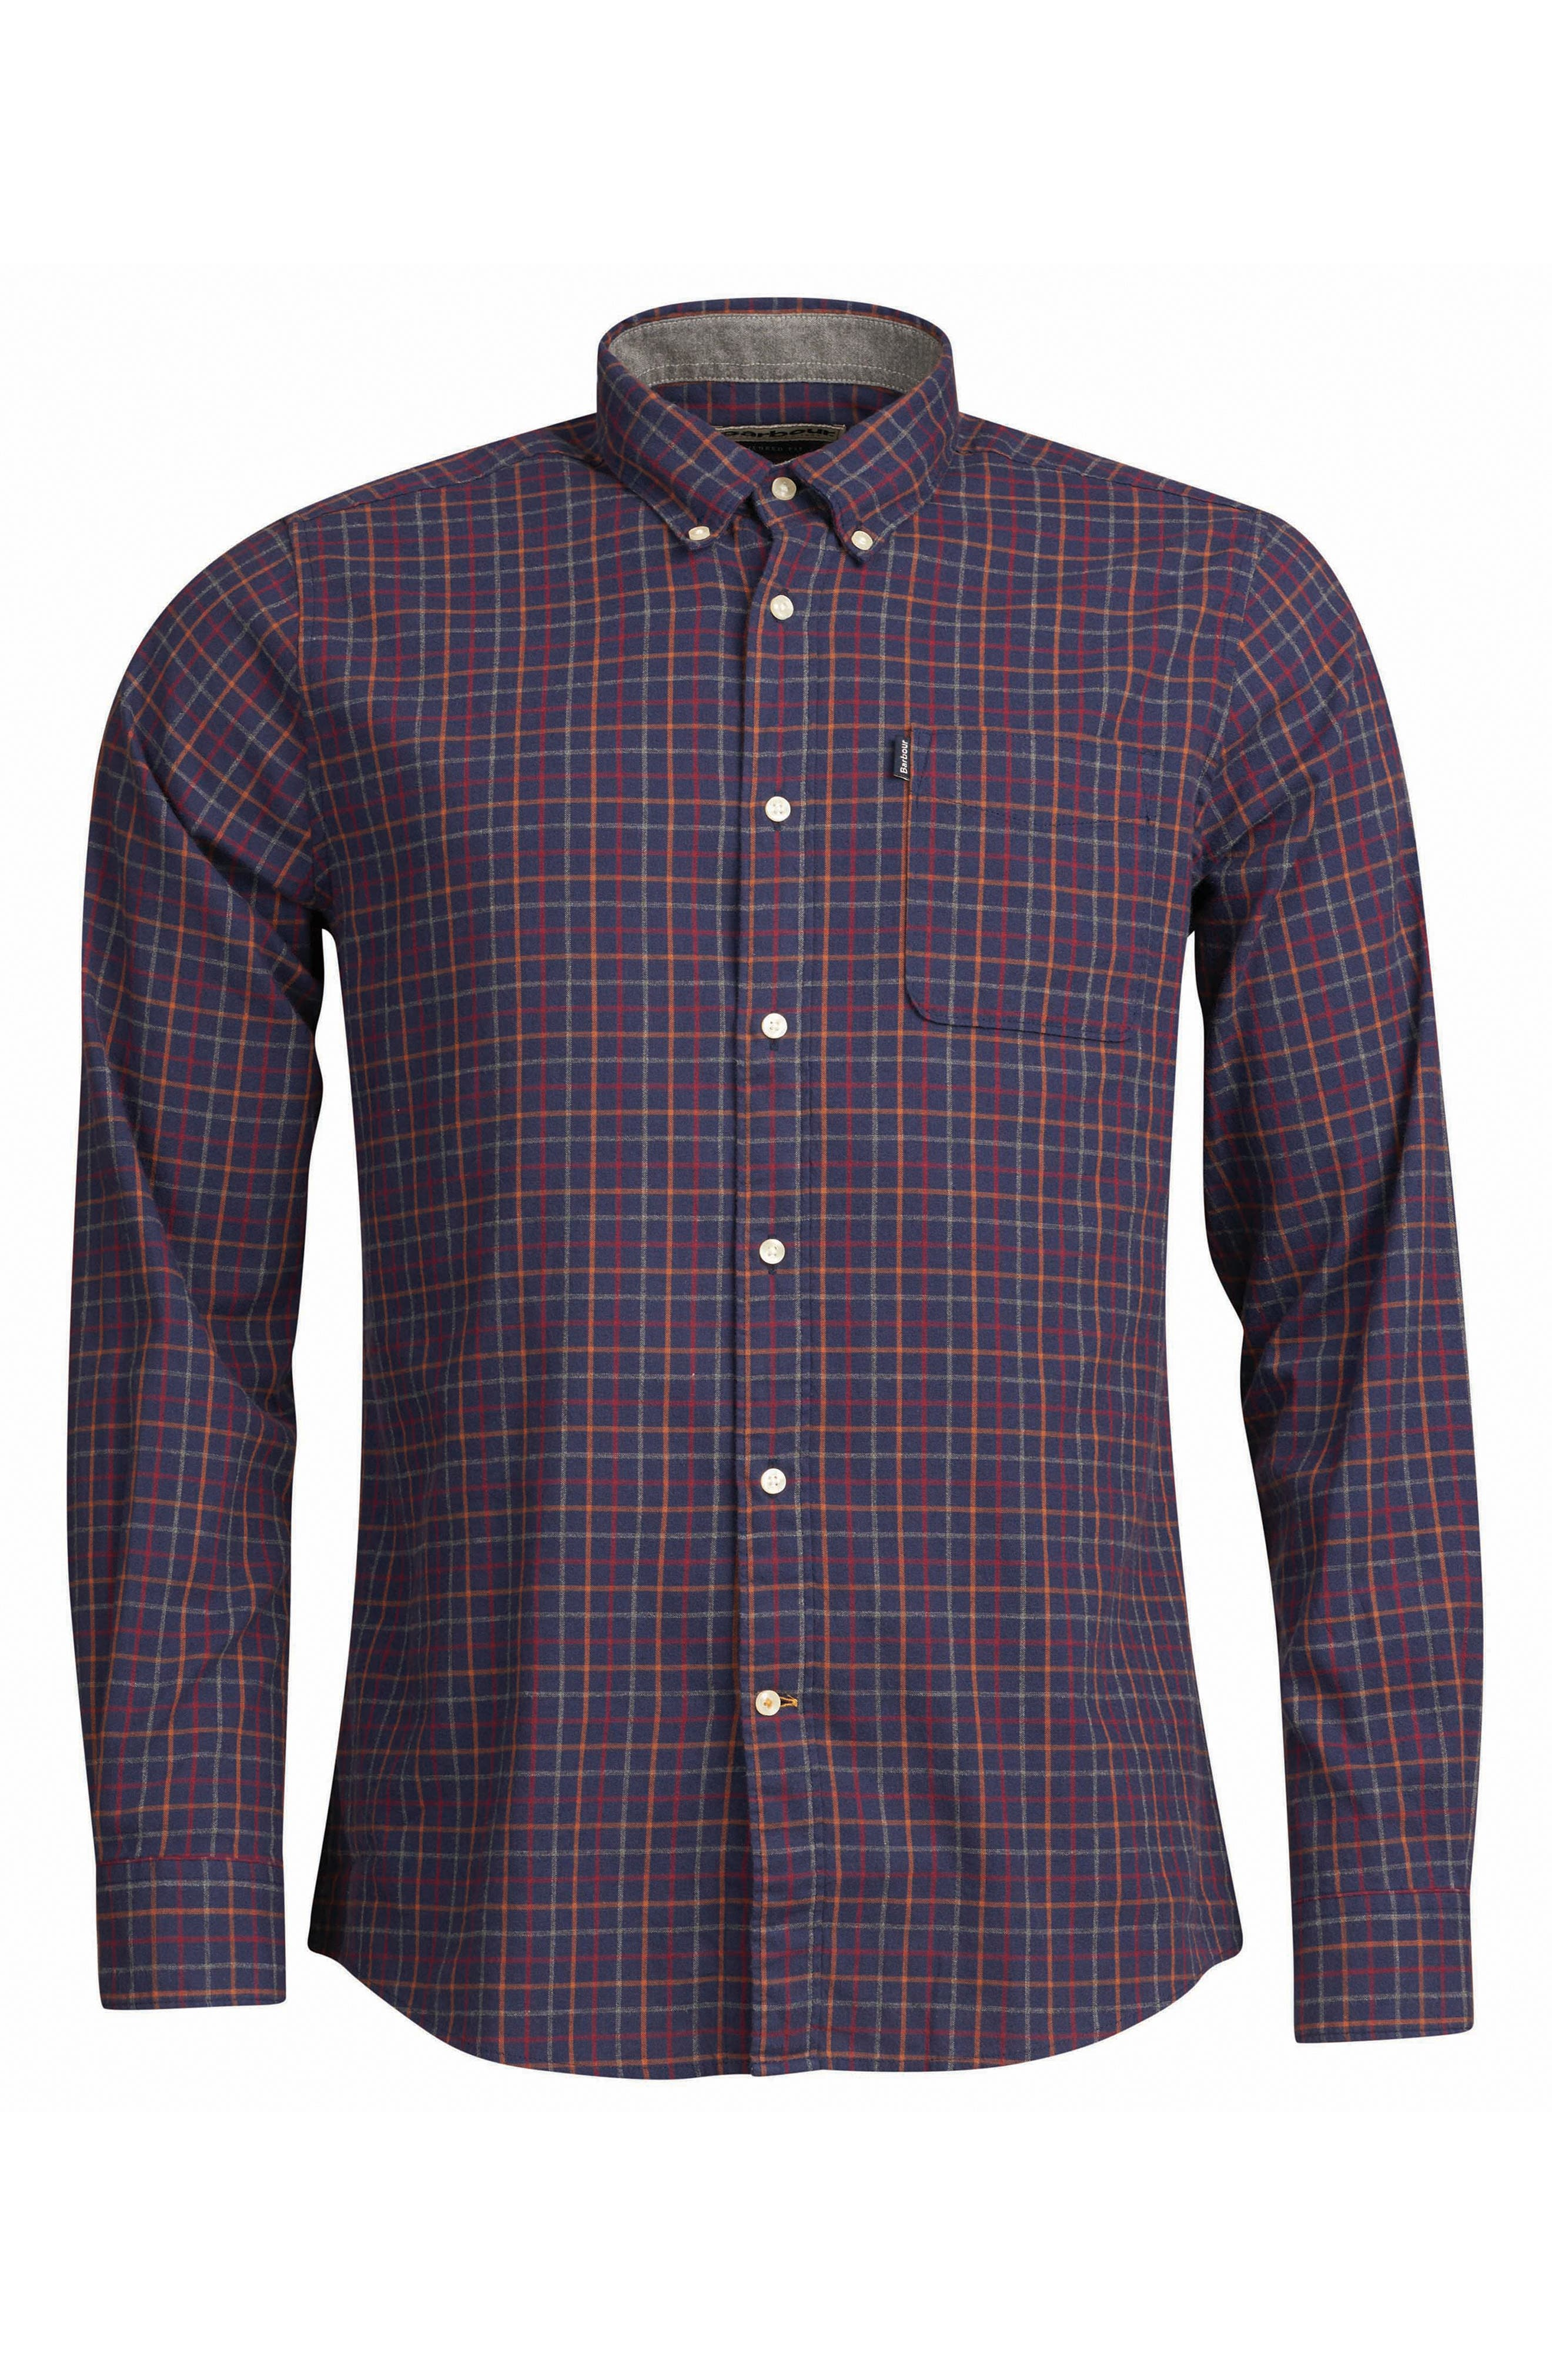 Endsleigh Tattersall Cotton Flannel Shirt,                             Alternate thumbnail 5, color,                             410